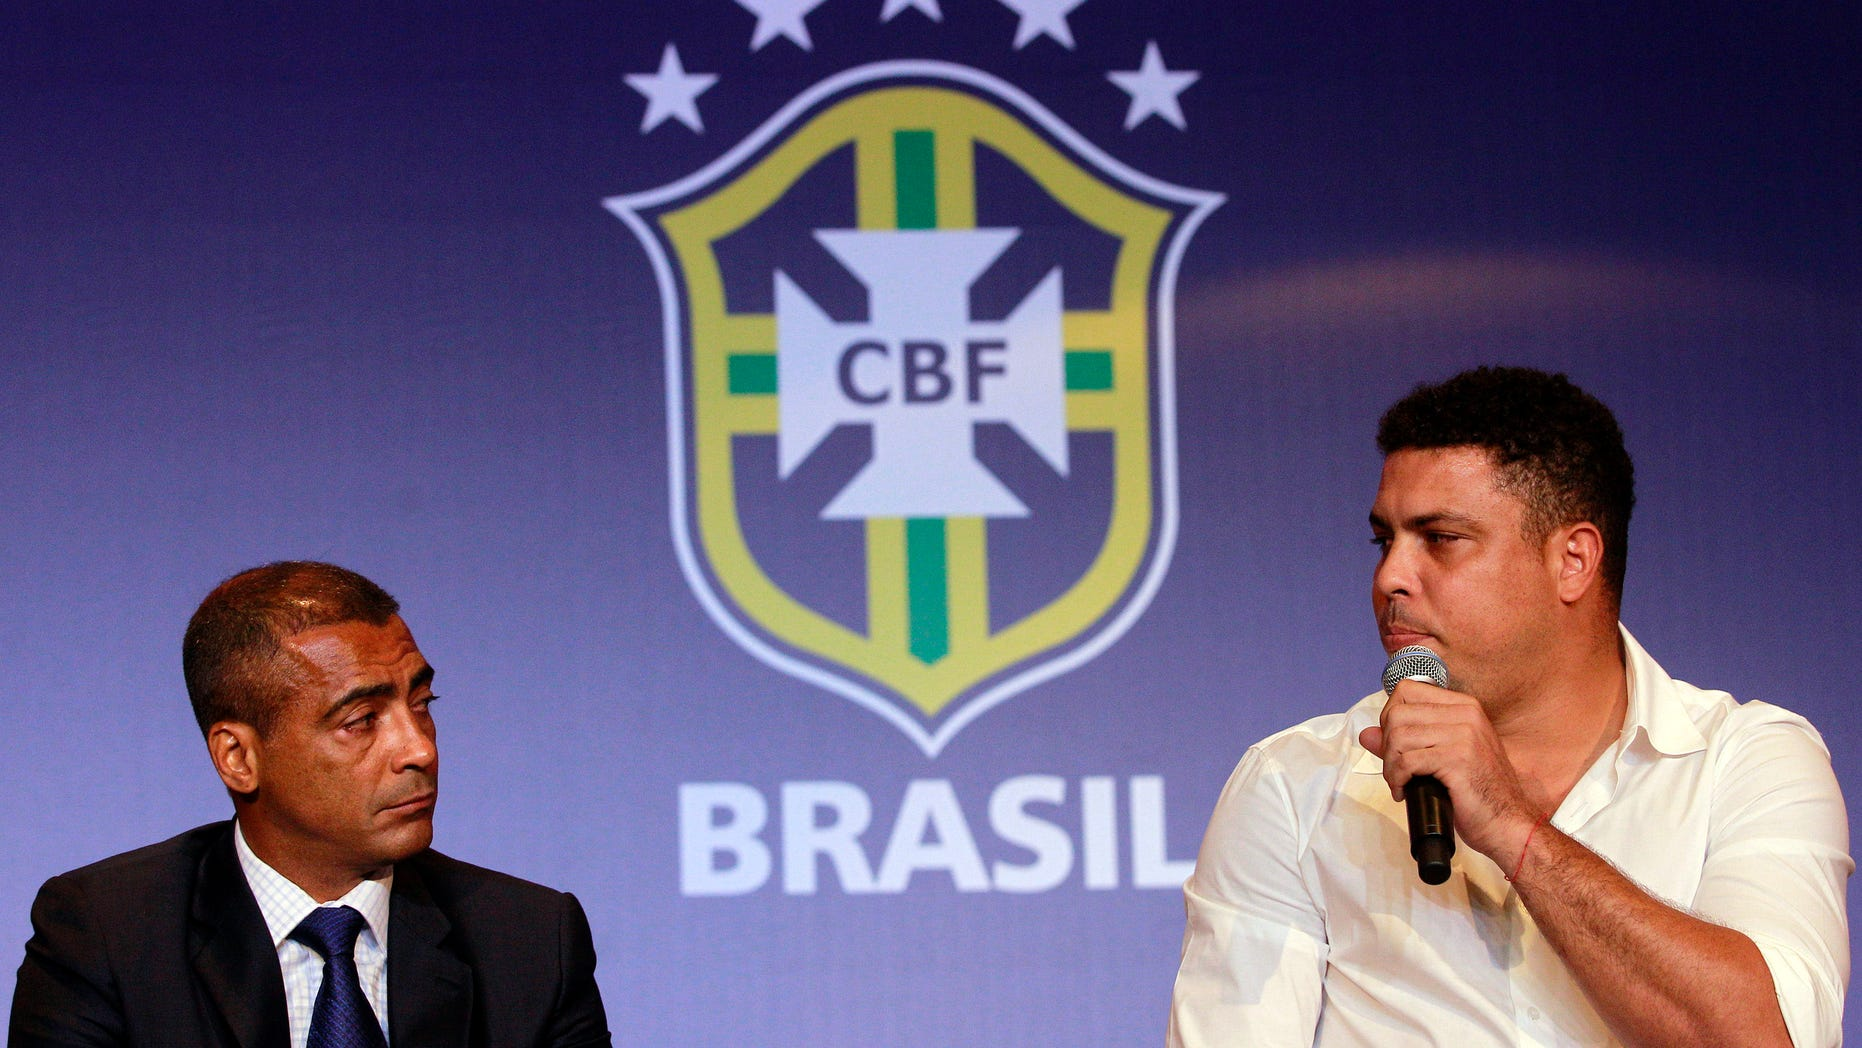 FILE - In this Dec. 23, 2011 file photo, former soccer stars Romario, left, and Ronaldo give a news conference in Rio de Janeiro, Brazil.  Romario and Ronaldo are at odds over the World Cup in Brazil, criticizing each other's conflicting comments about what the tournament means to the country's population. (AP Photo/Victor R. Caivano, File)